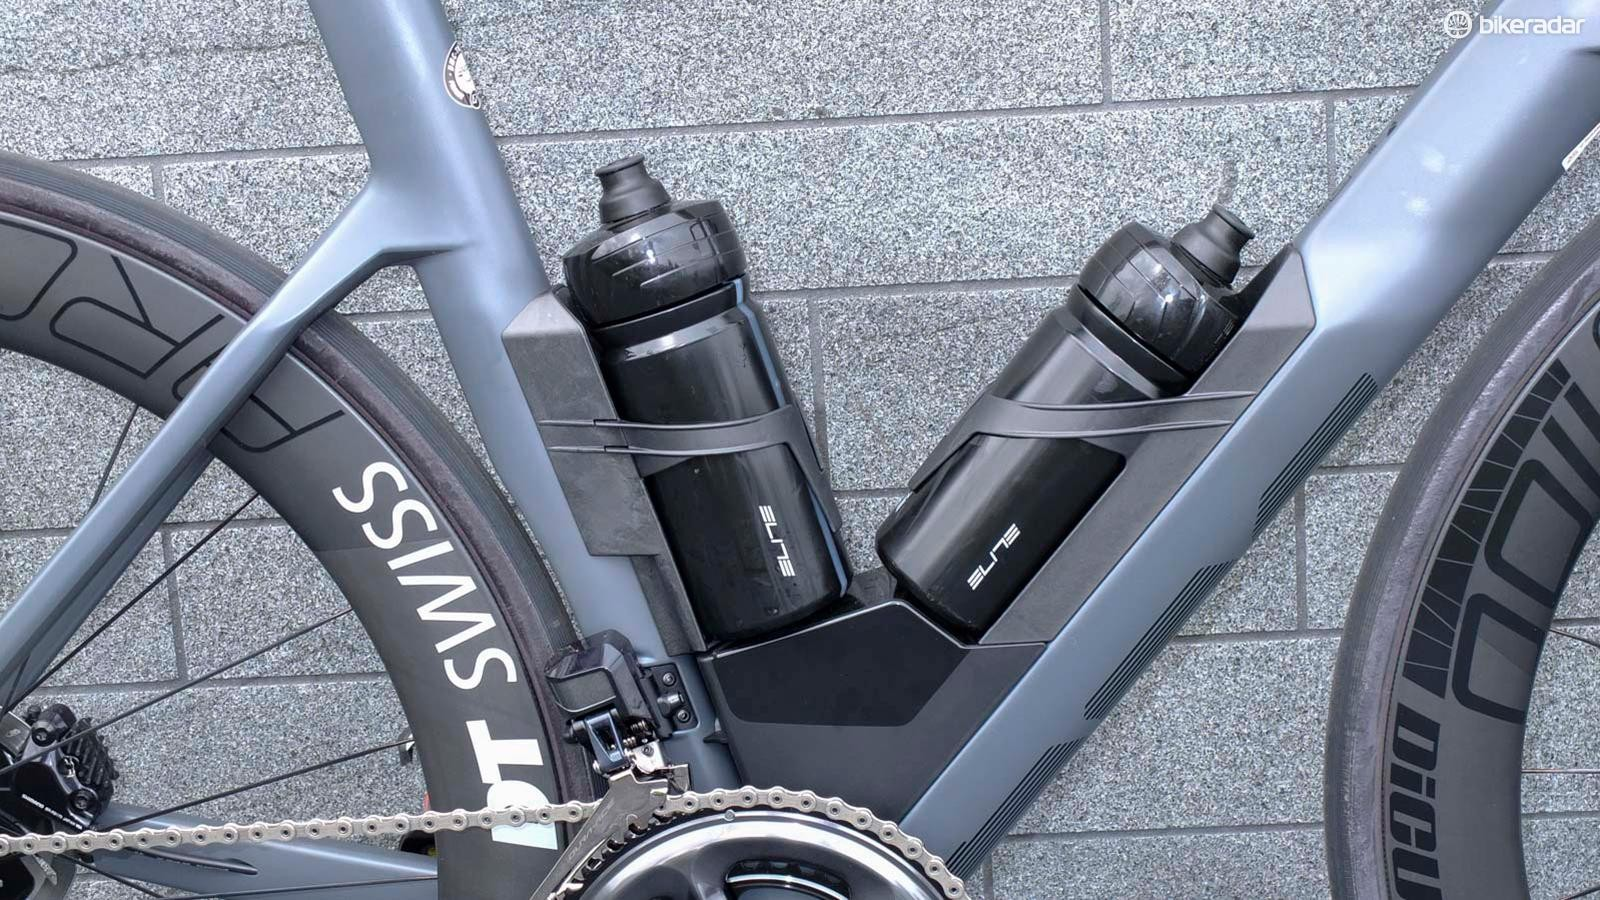 The Aero Module was developed with Elite to smooth airflow over the necessary bottles and cages